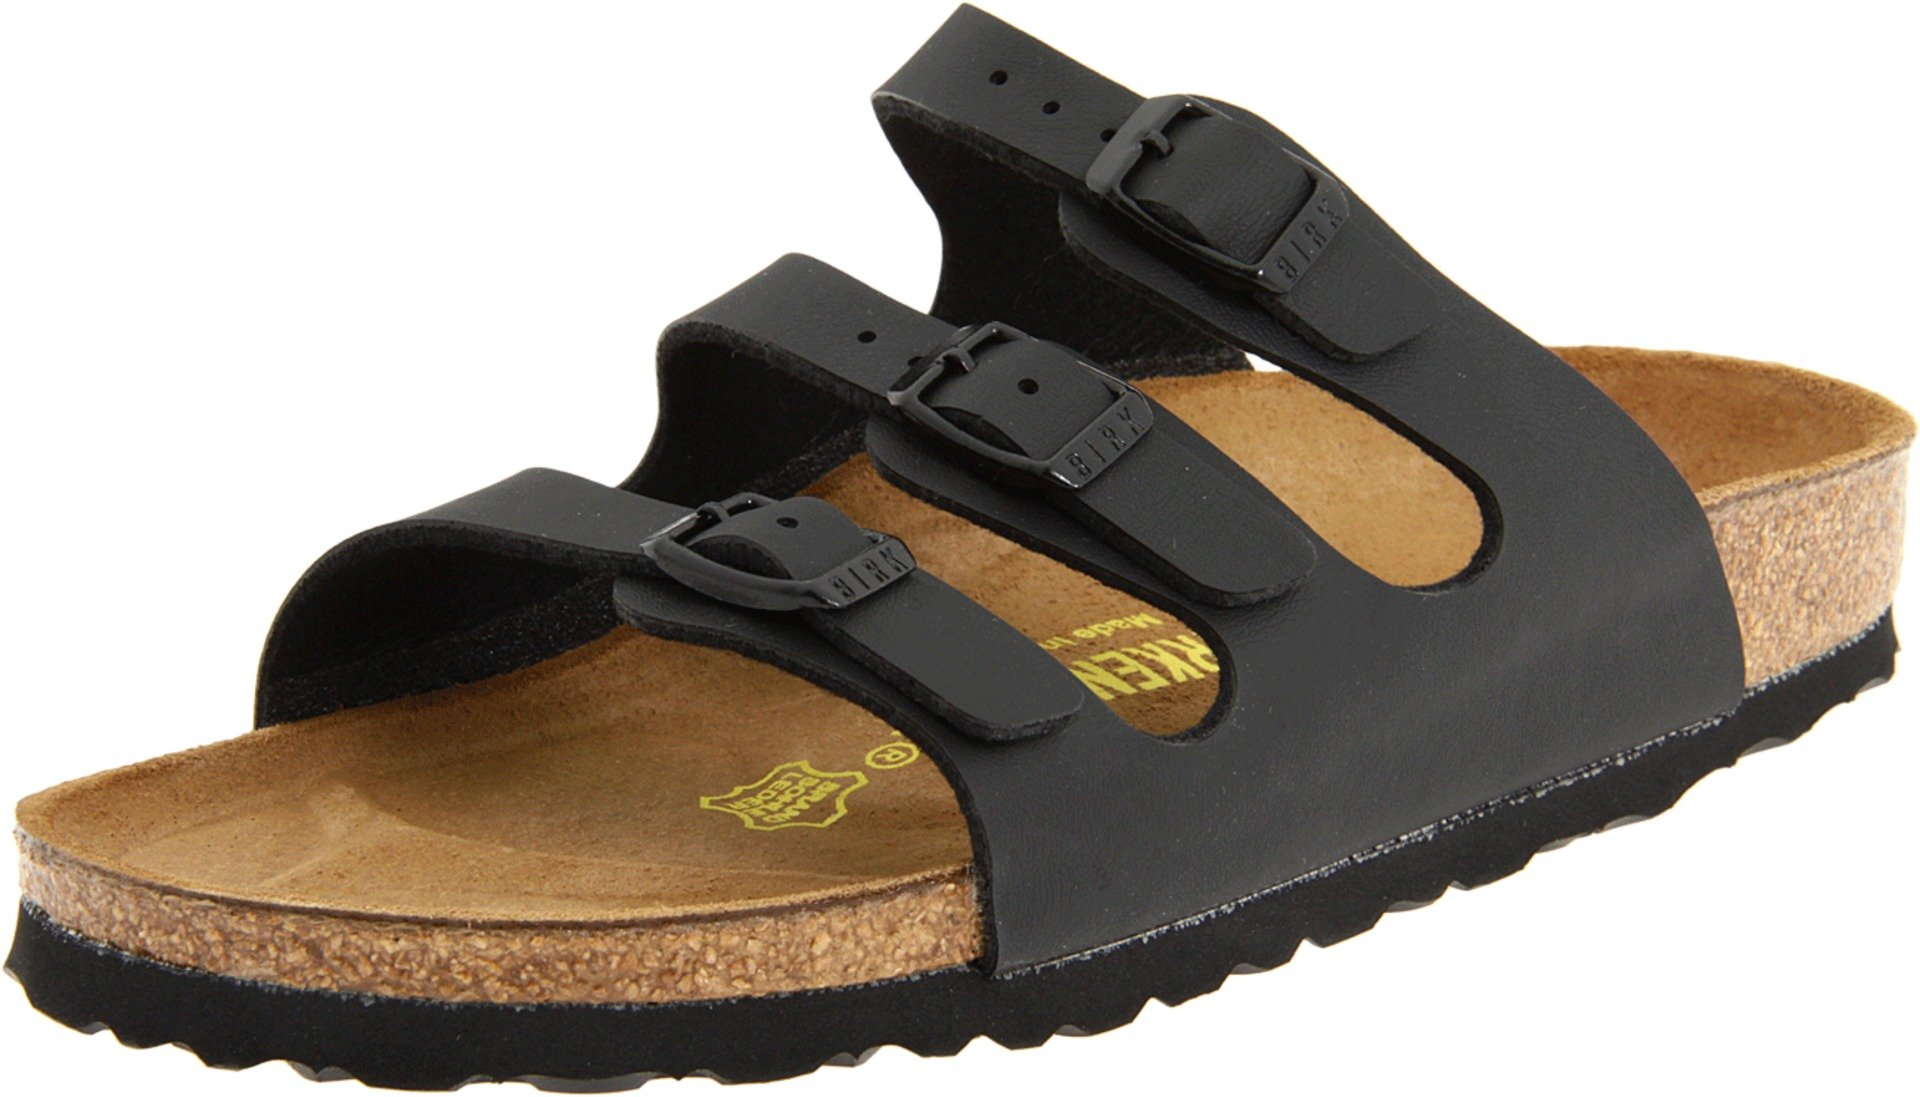 Birkenstock Women's Florida Sandals,Black,38 N EU / 7-7.5 AA(N) US by Birkenstock (Image #1)